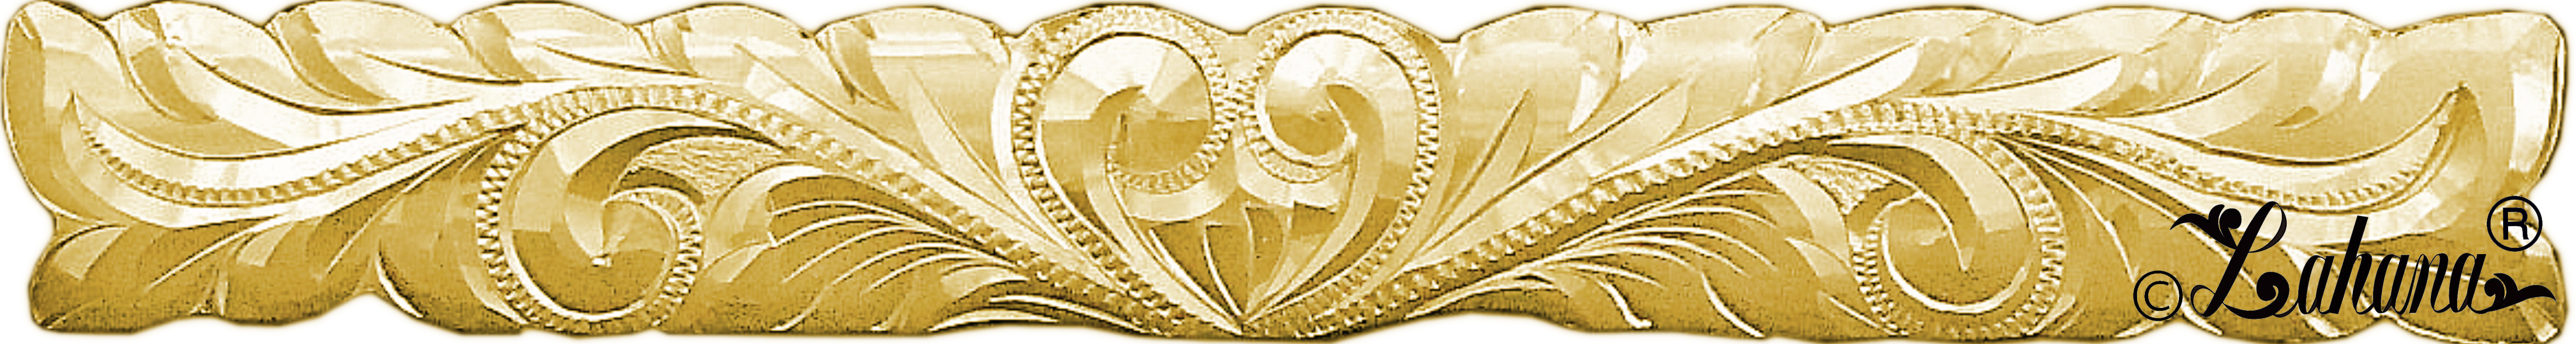 14k-sample-logo-ad-f.jpg